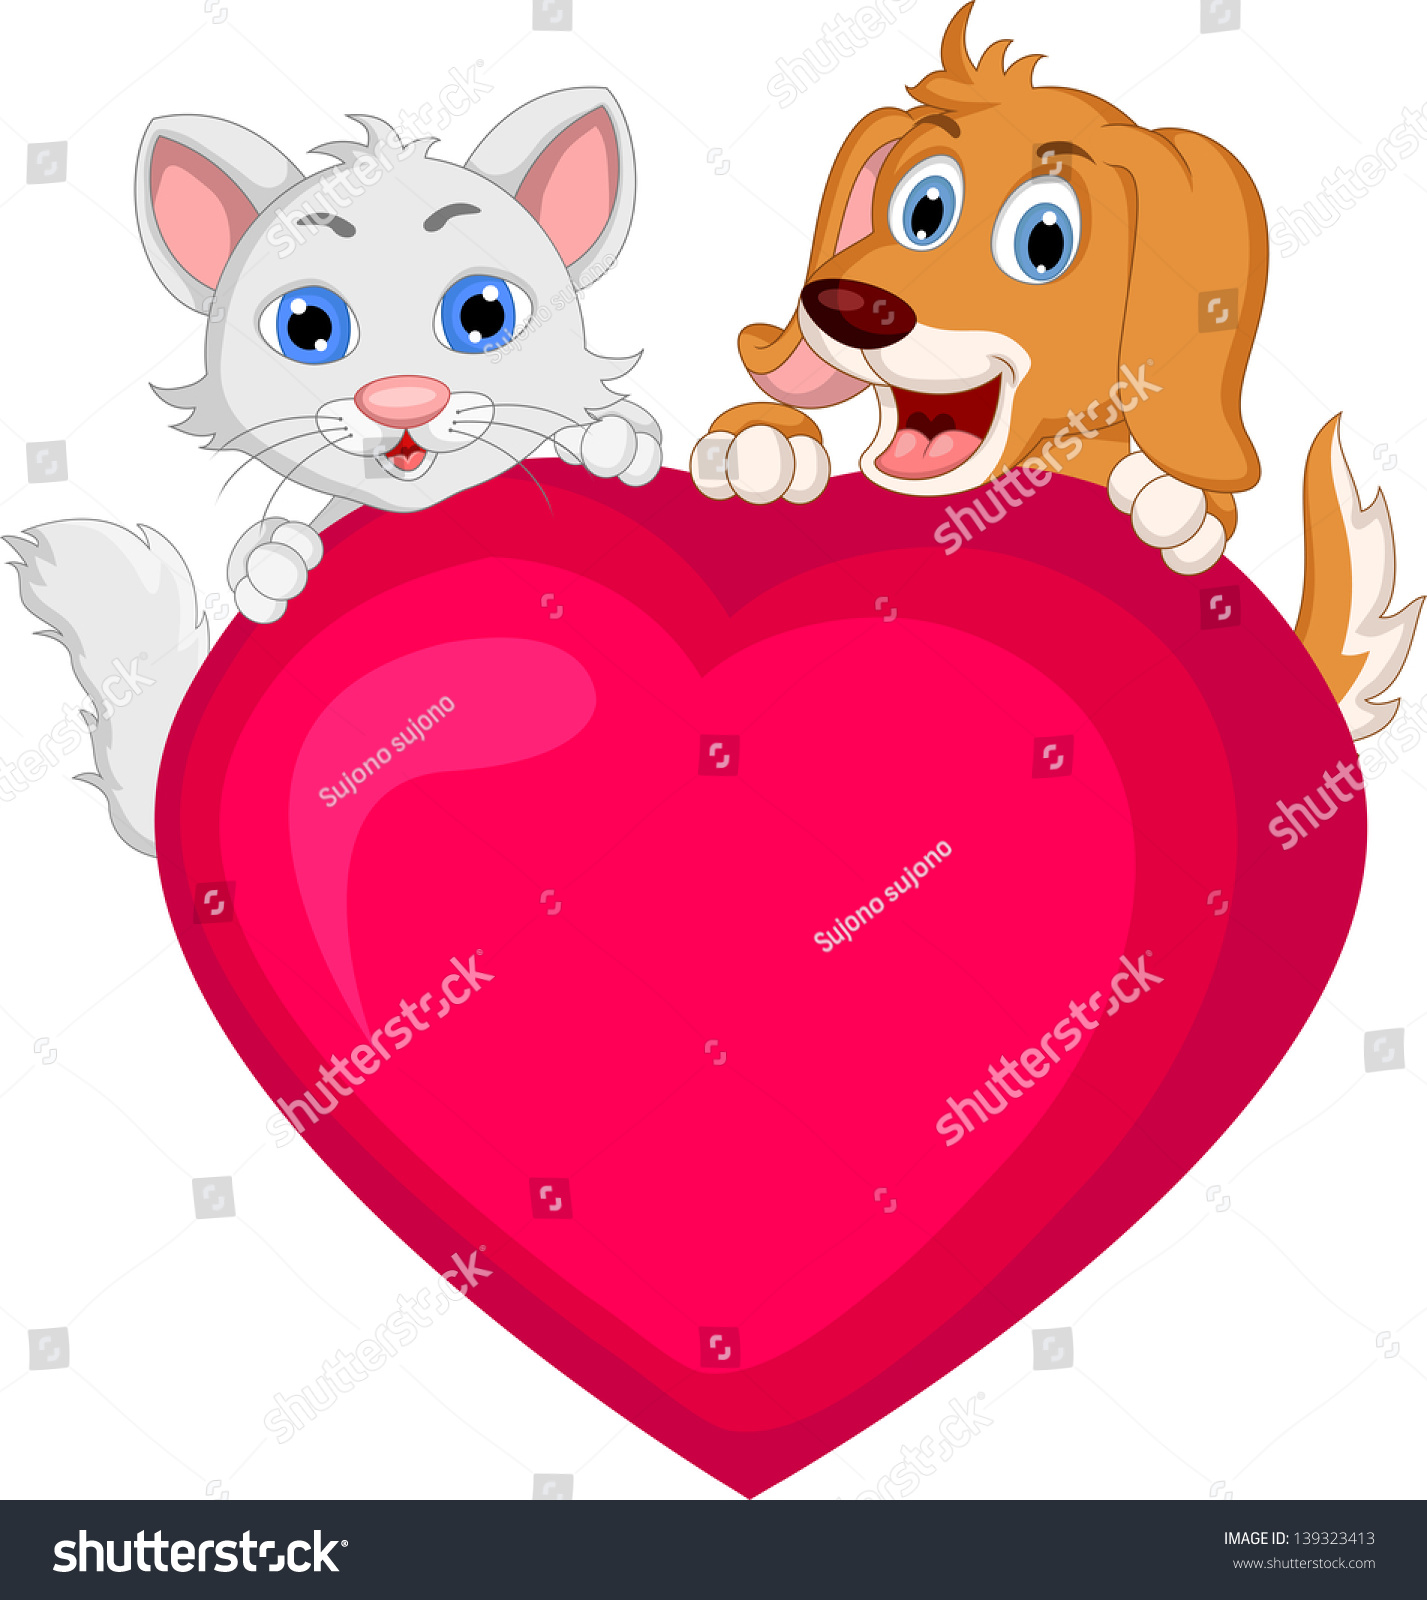 Cartoon dog stock photos images amp pictures shutterstock - Source Image Shutterstock Com